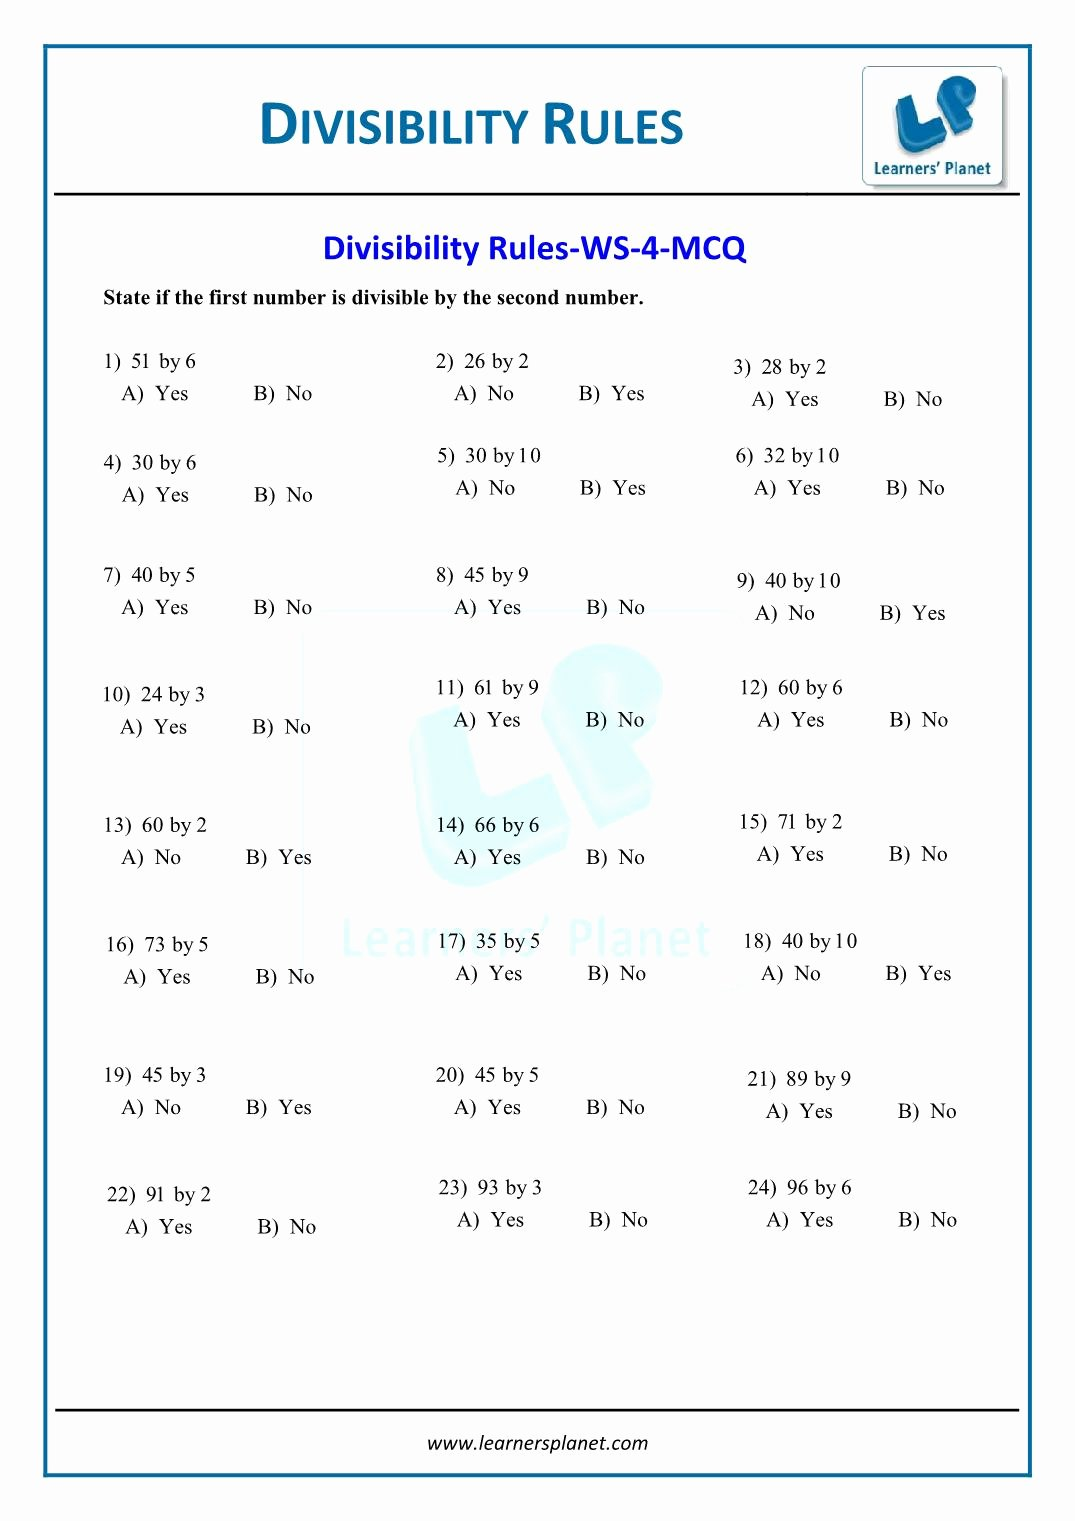 Divisibility Rules Worksheet 6th Grade New Line Math Divisibility Rules Test Paper for 6th Class Cbse